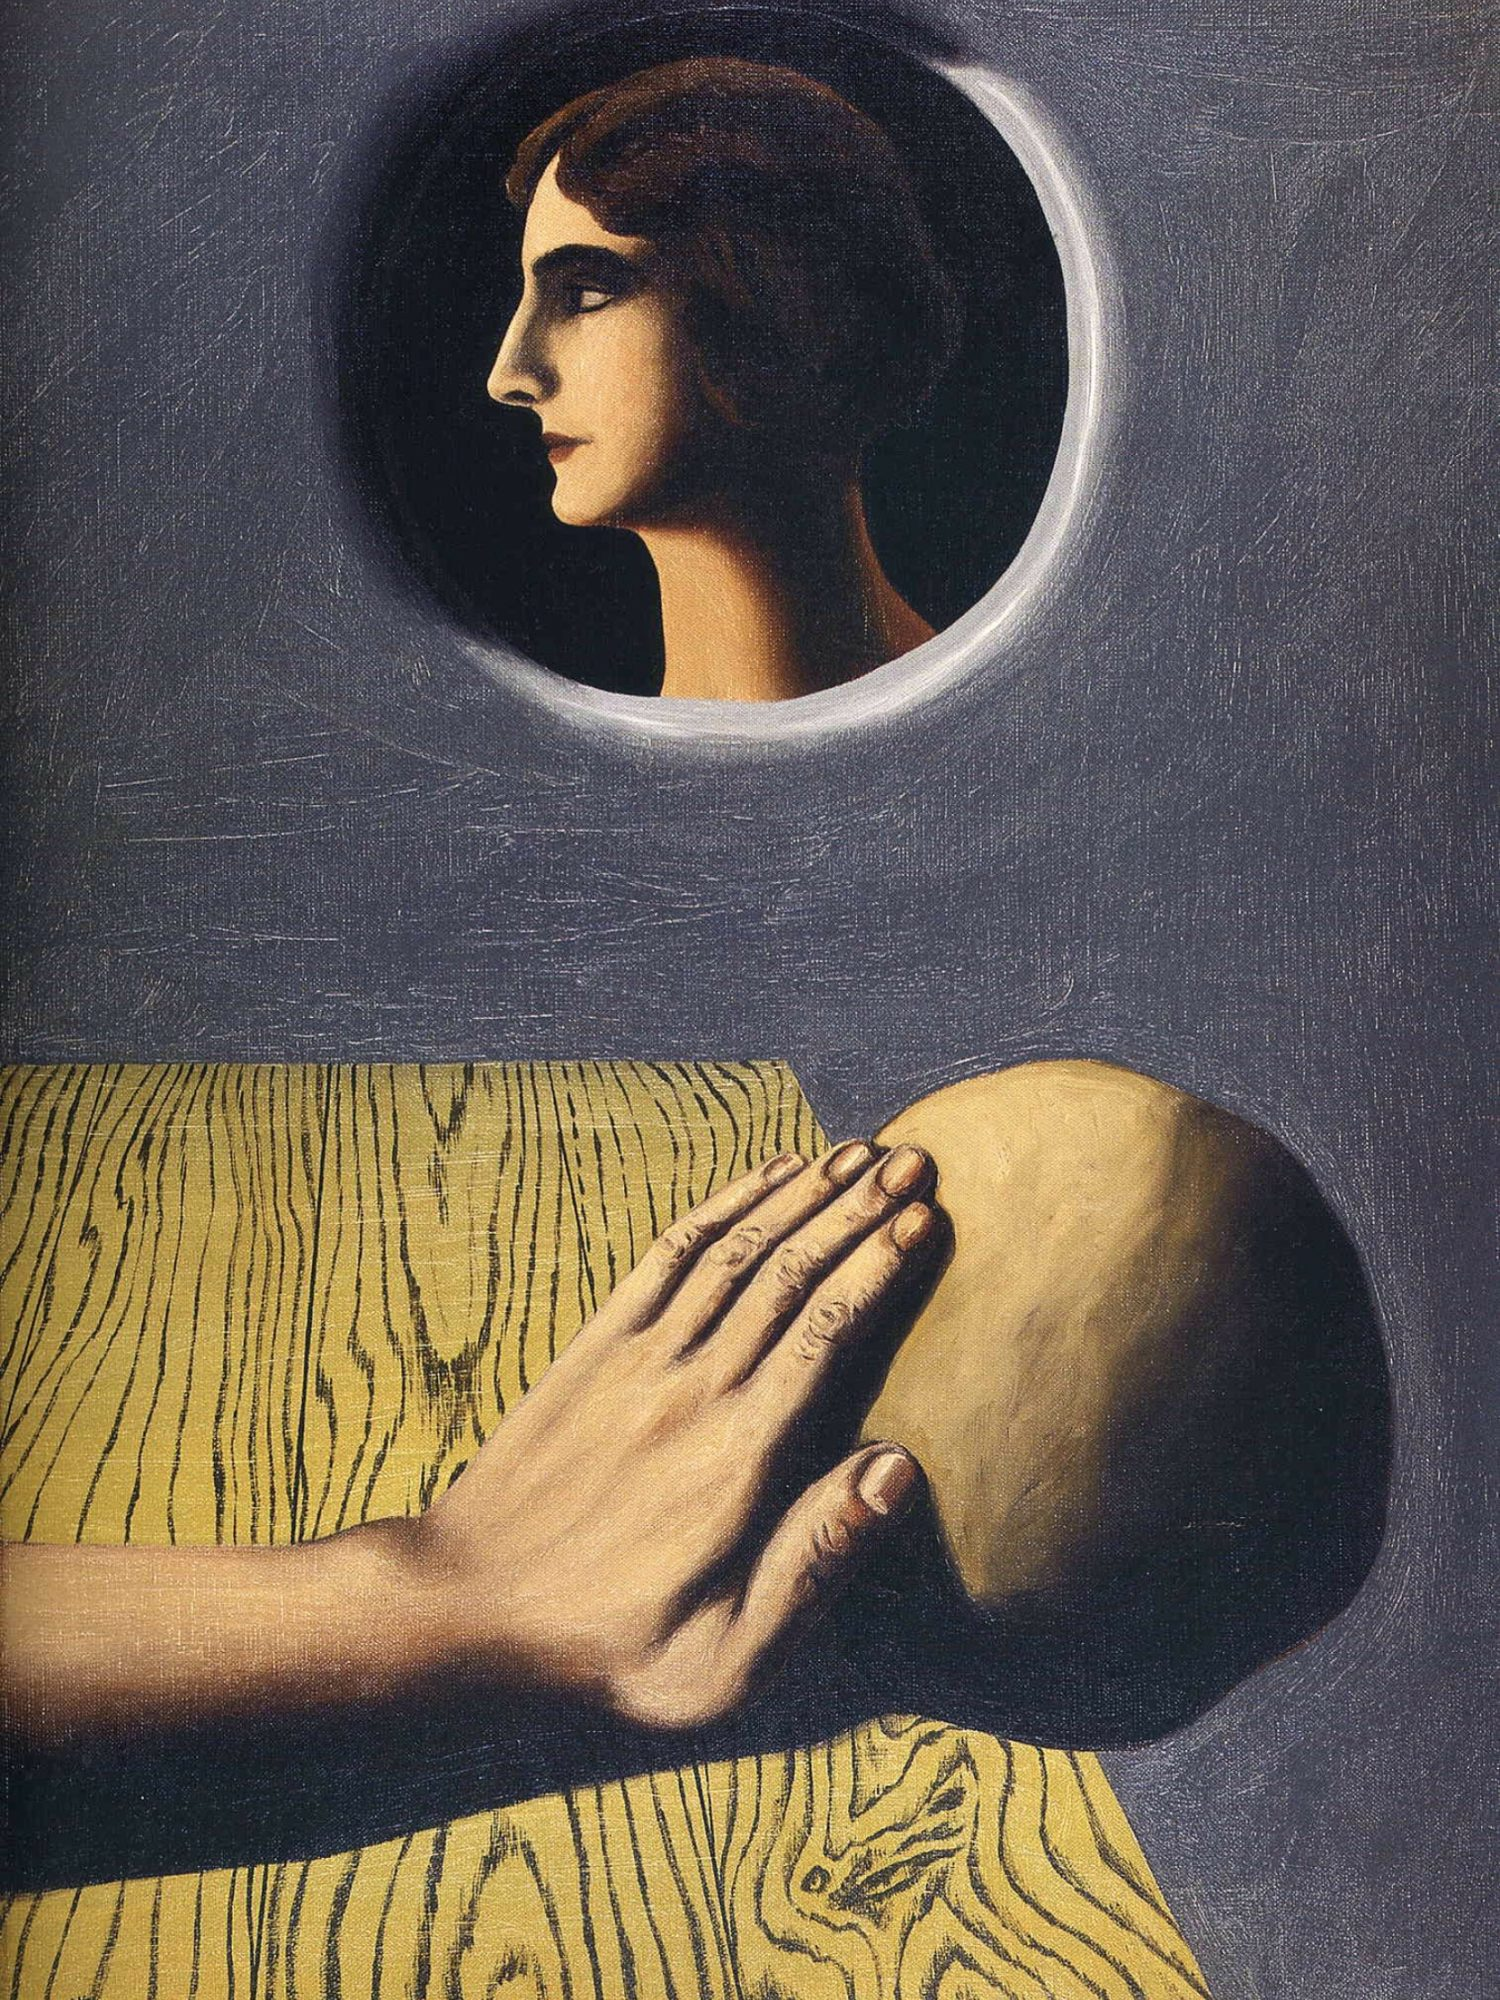 1927, the beneficial promise by Rene Magritte.